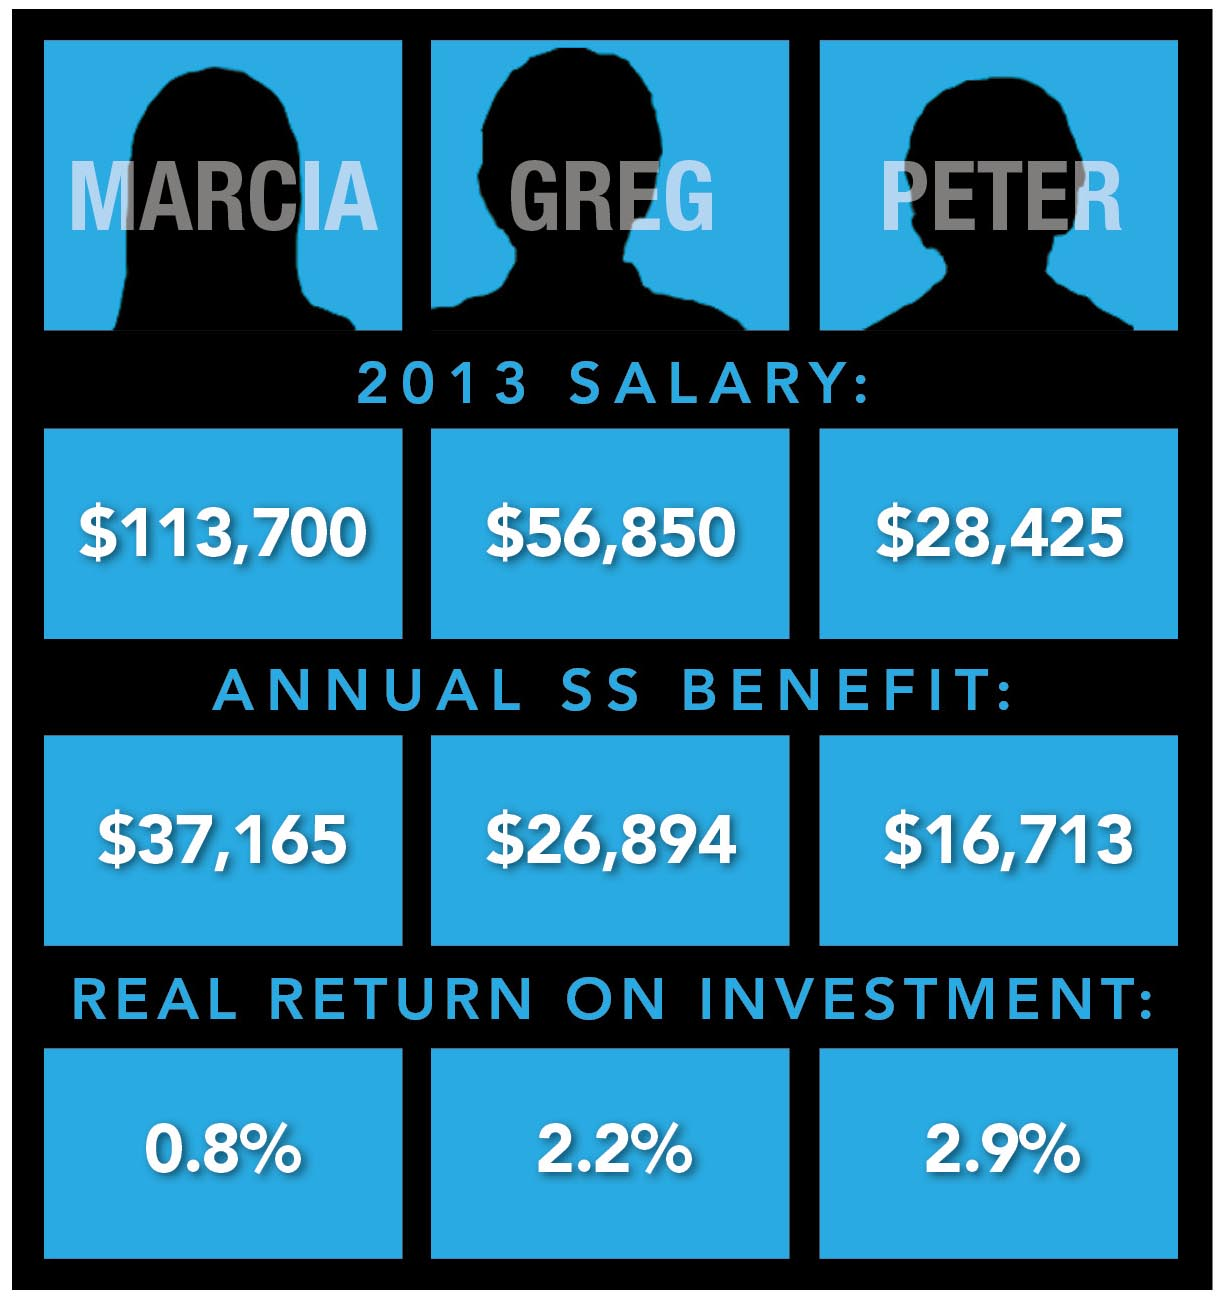 Net Benefit of Social Security Scenario 2: Employer contribution included